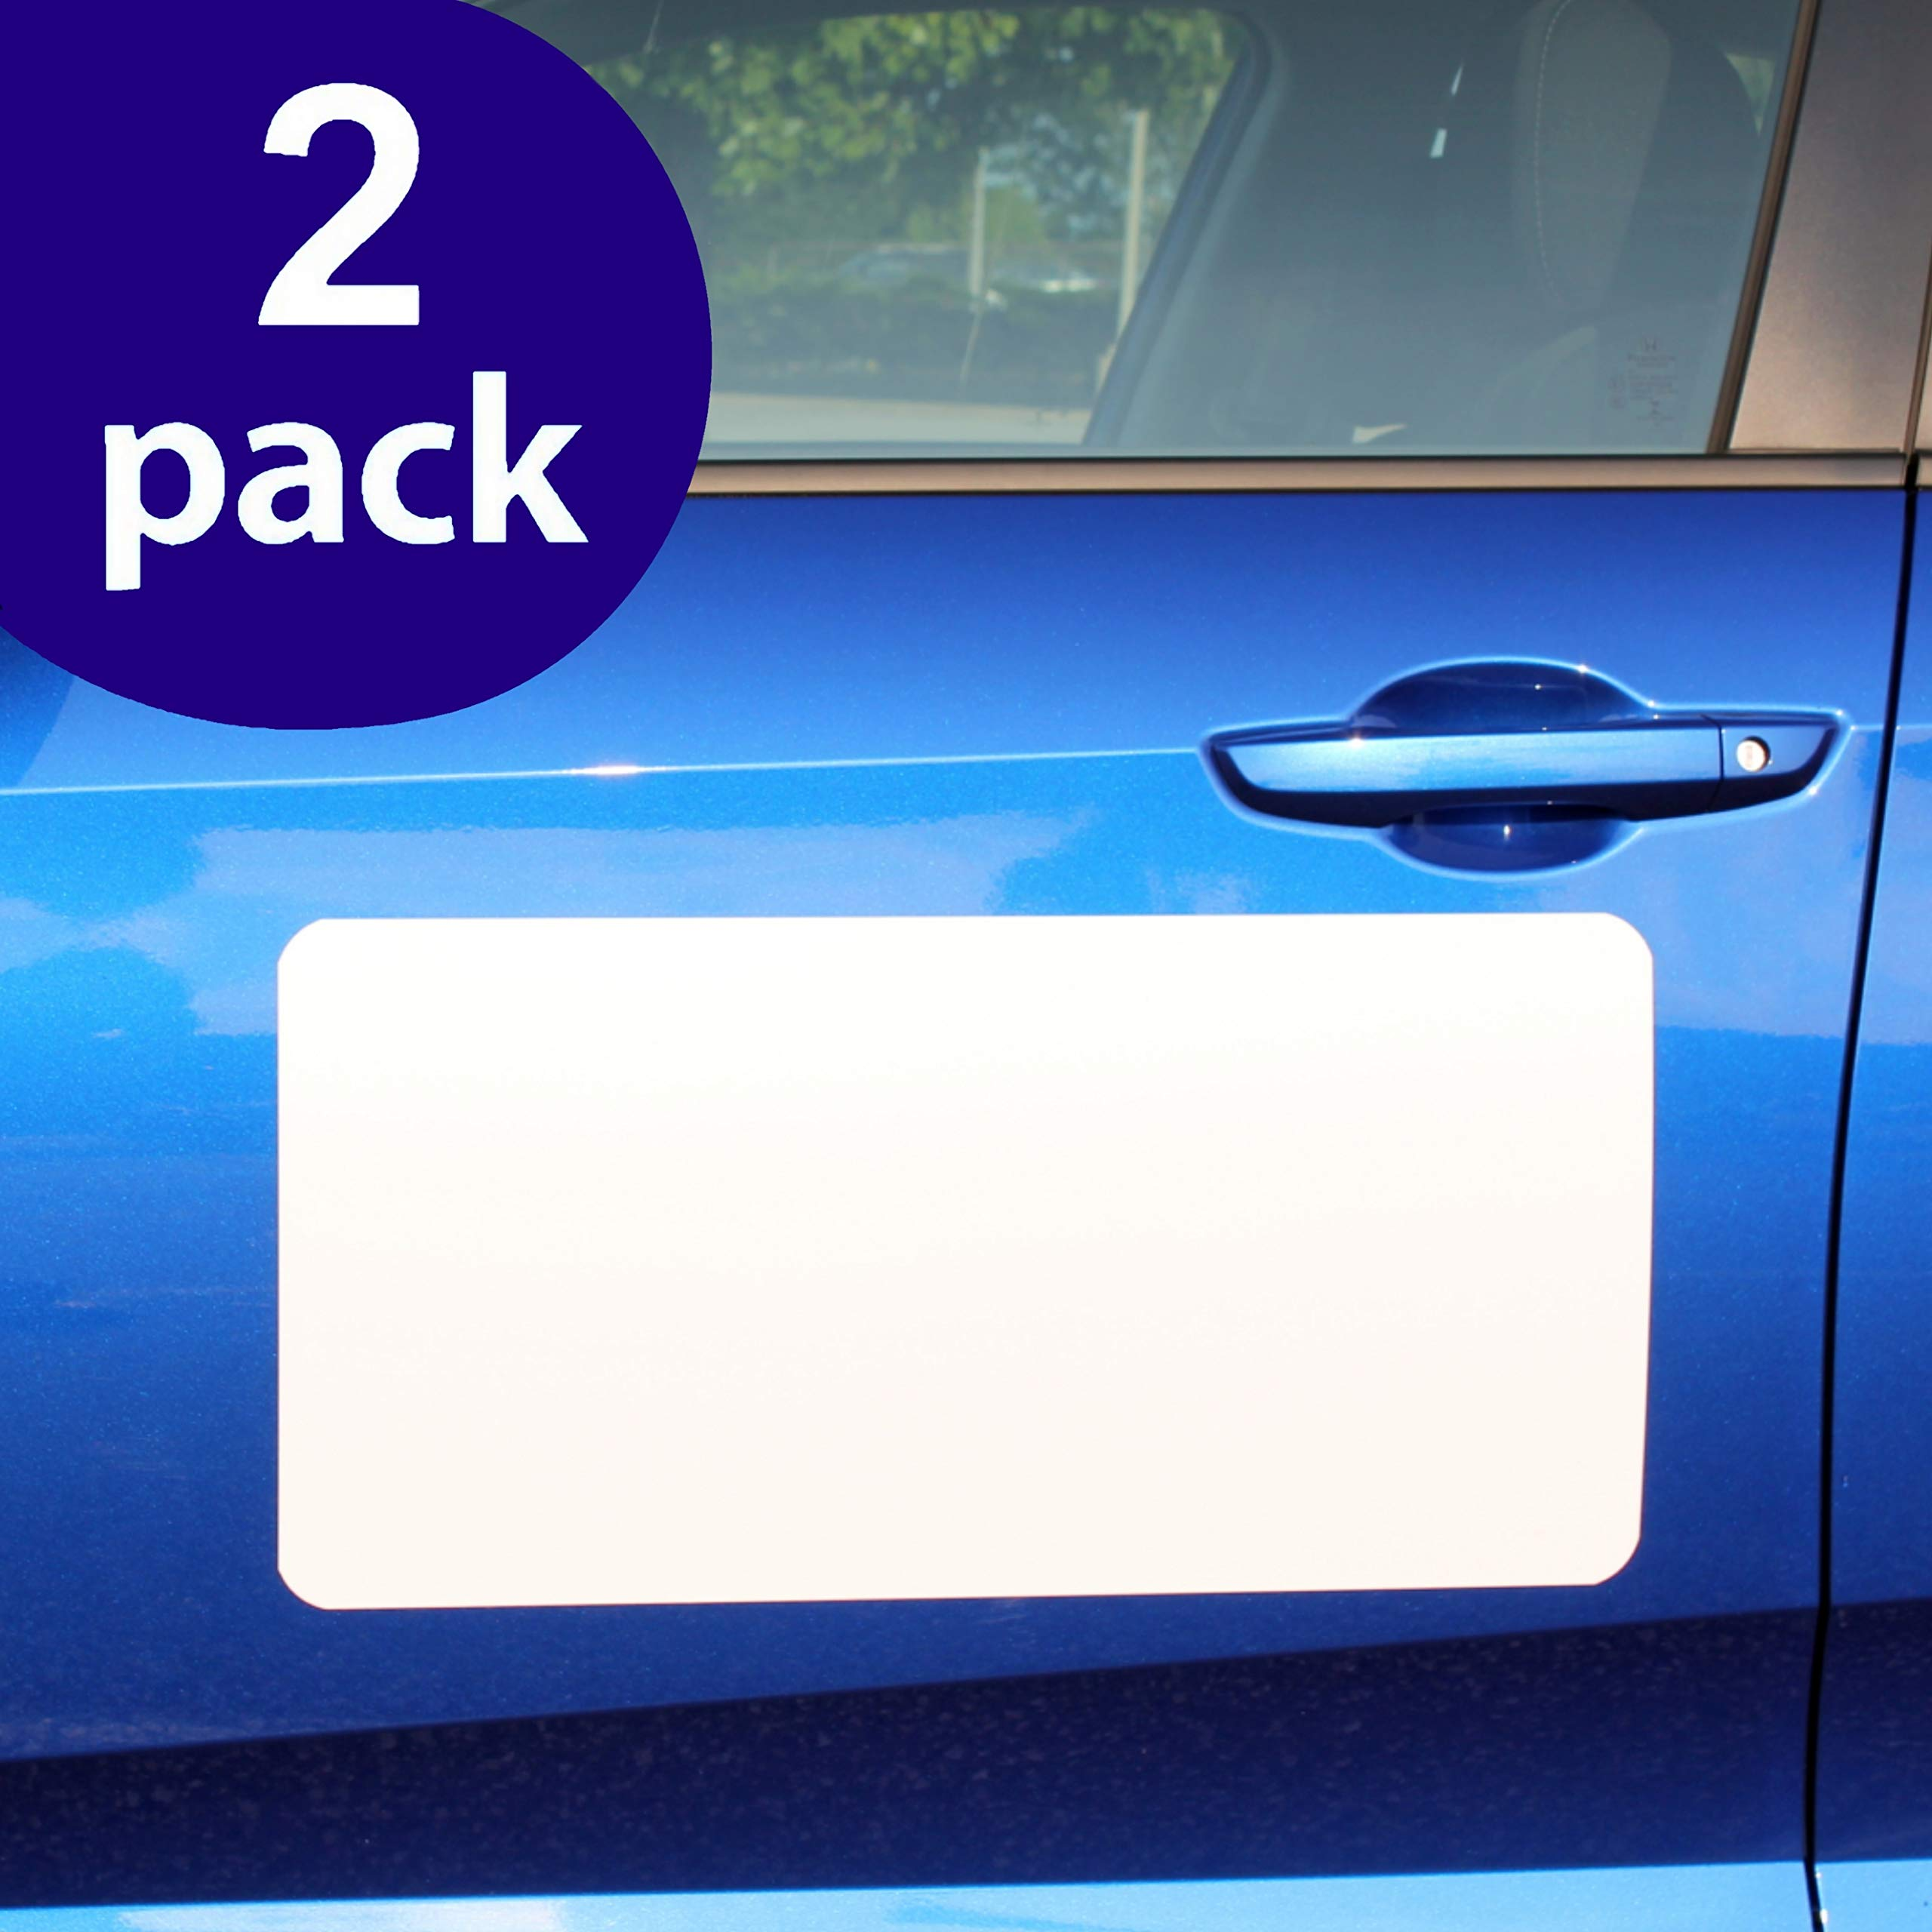 Blank Magnets (2 Pack) - Rounded Corners 12'' x 24'' Blank Car Magnet Set - Perfect Magnet for Car to Advertise Business, Cover Company Logo (for HOA), and Prevent Car Scratches & Dents - New! by SignHero